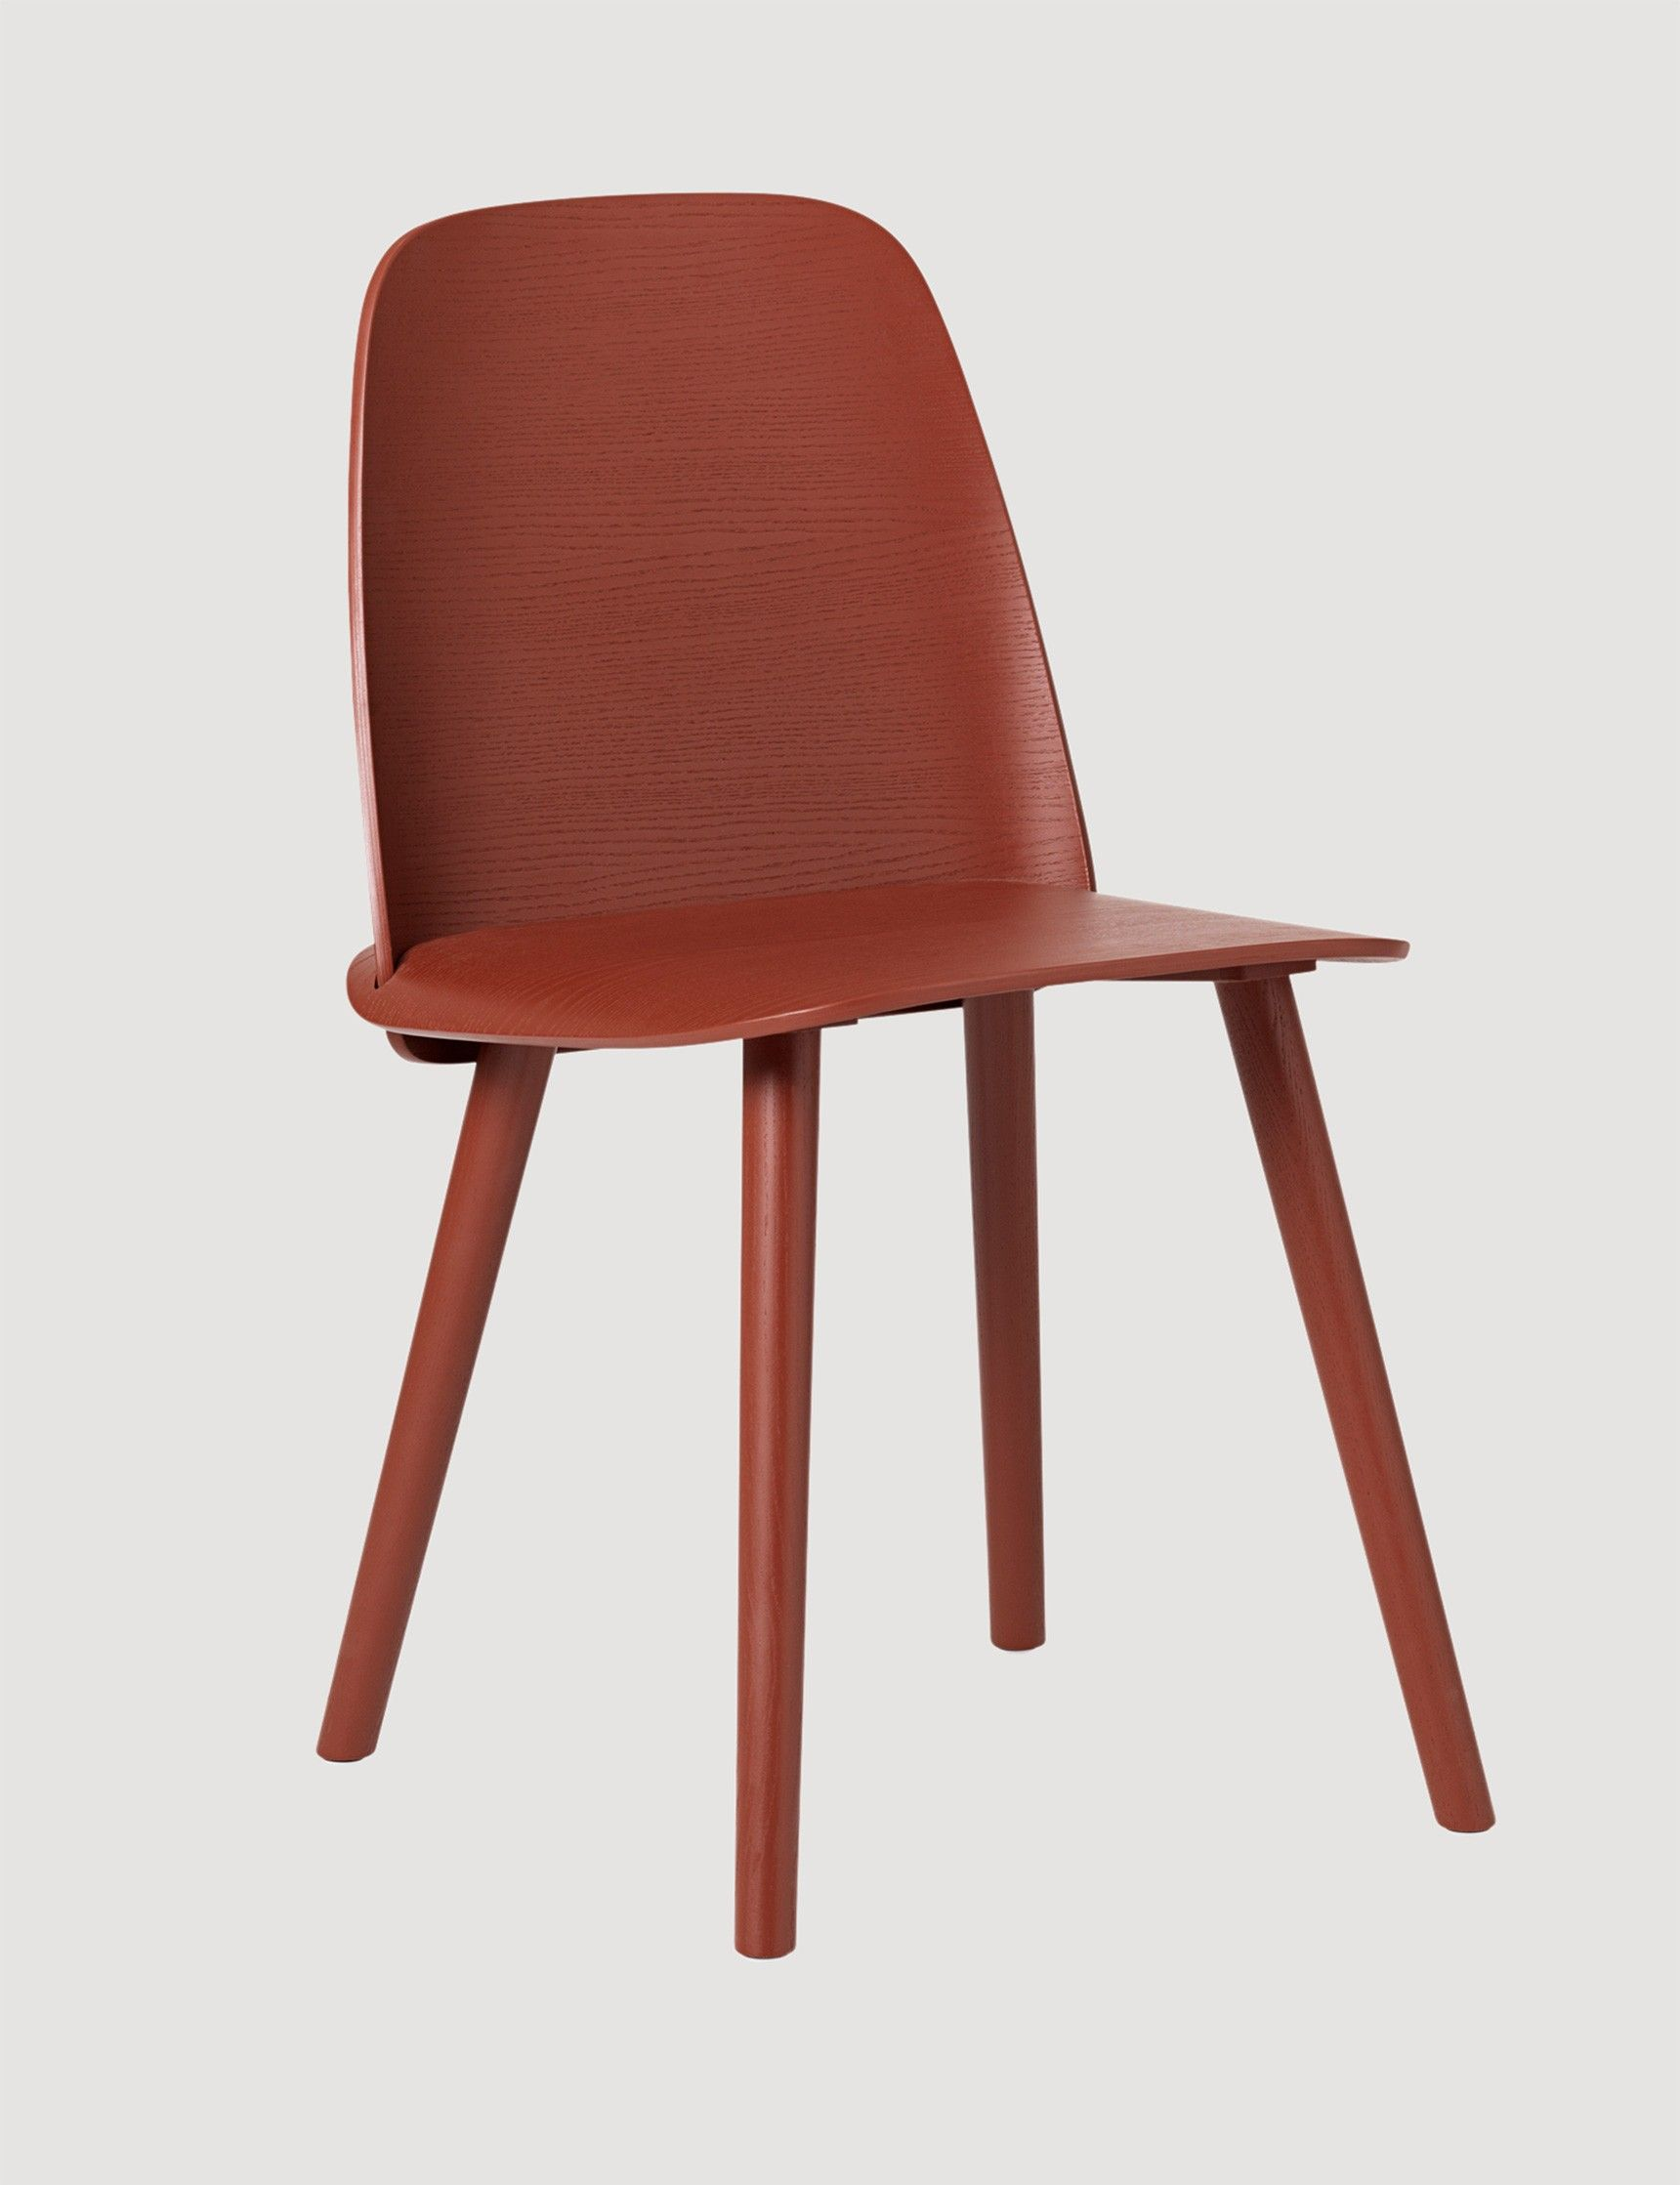 Knitting Chair In 2020 Iconic Chairs Chair Classic Furniture